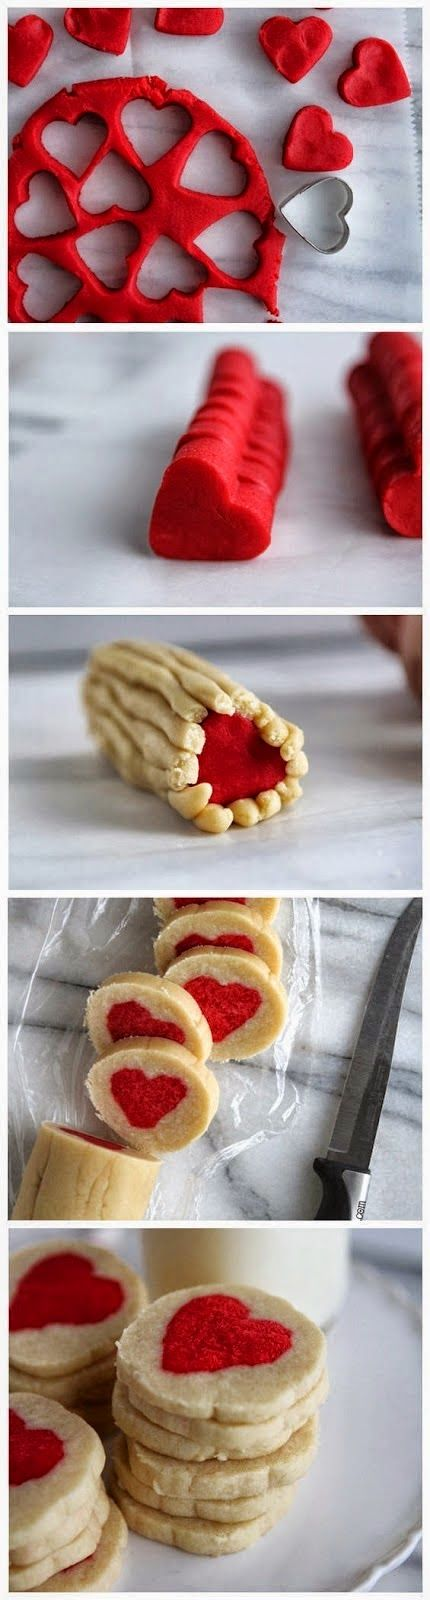 How To Make Slice n' Bake Valentine Heart Cookies | Food Blog